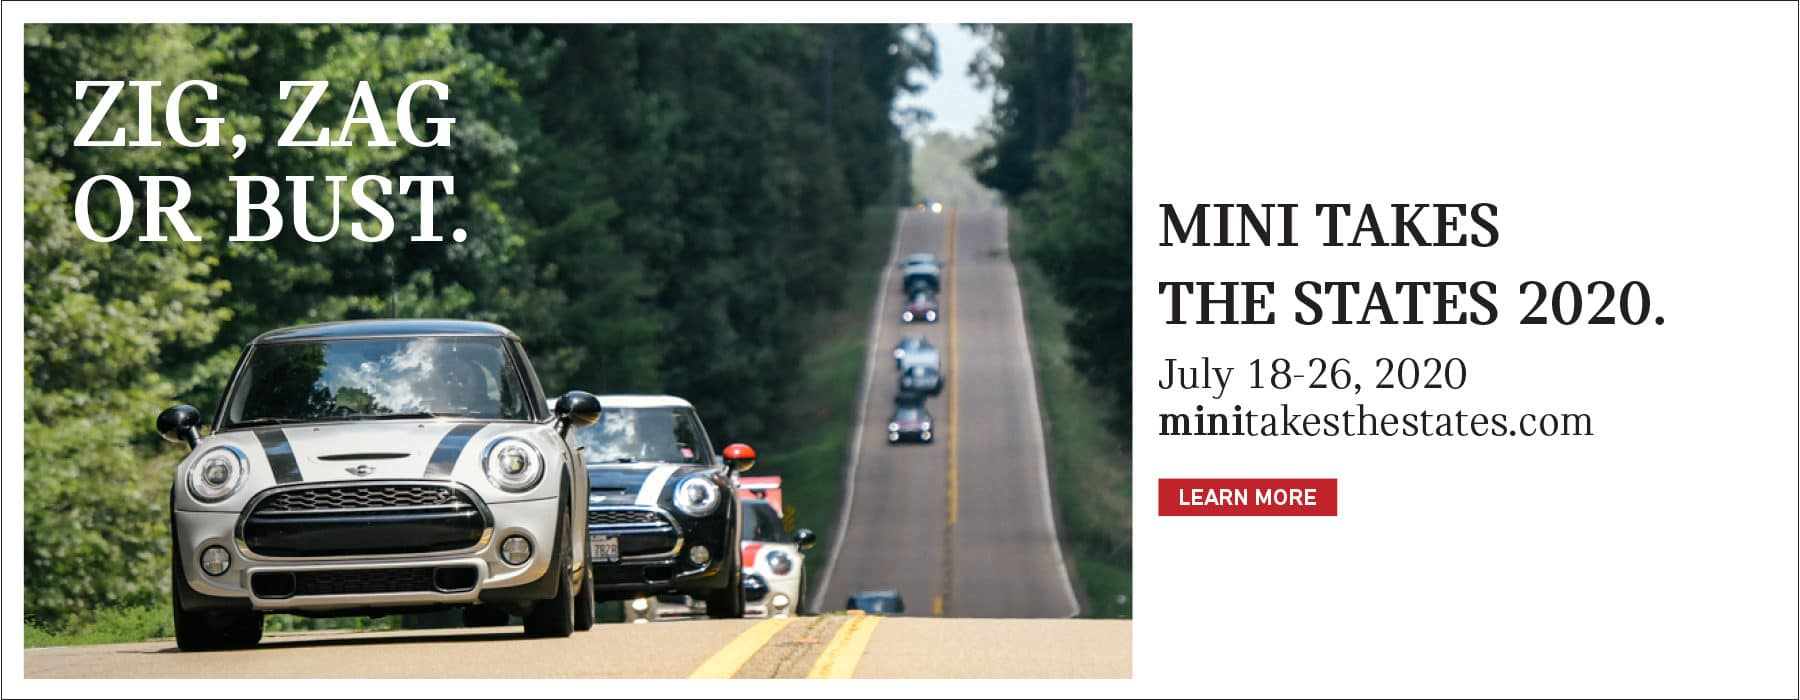 7 minis driving on a road together. mini takes the states 2020. july 18-26 2020. visit minitakesthestates.com to learn more